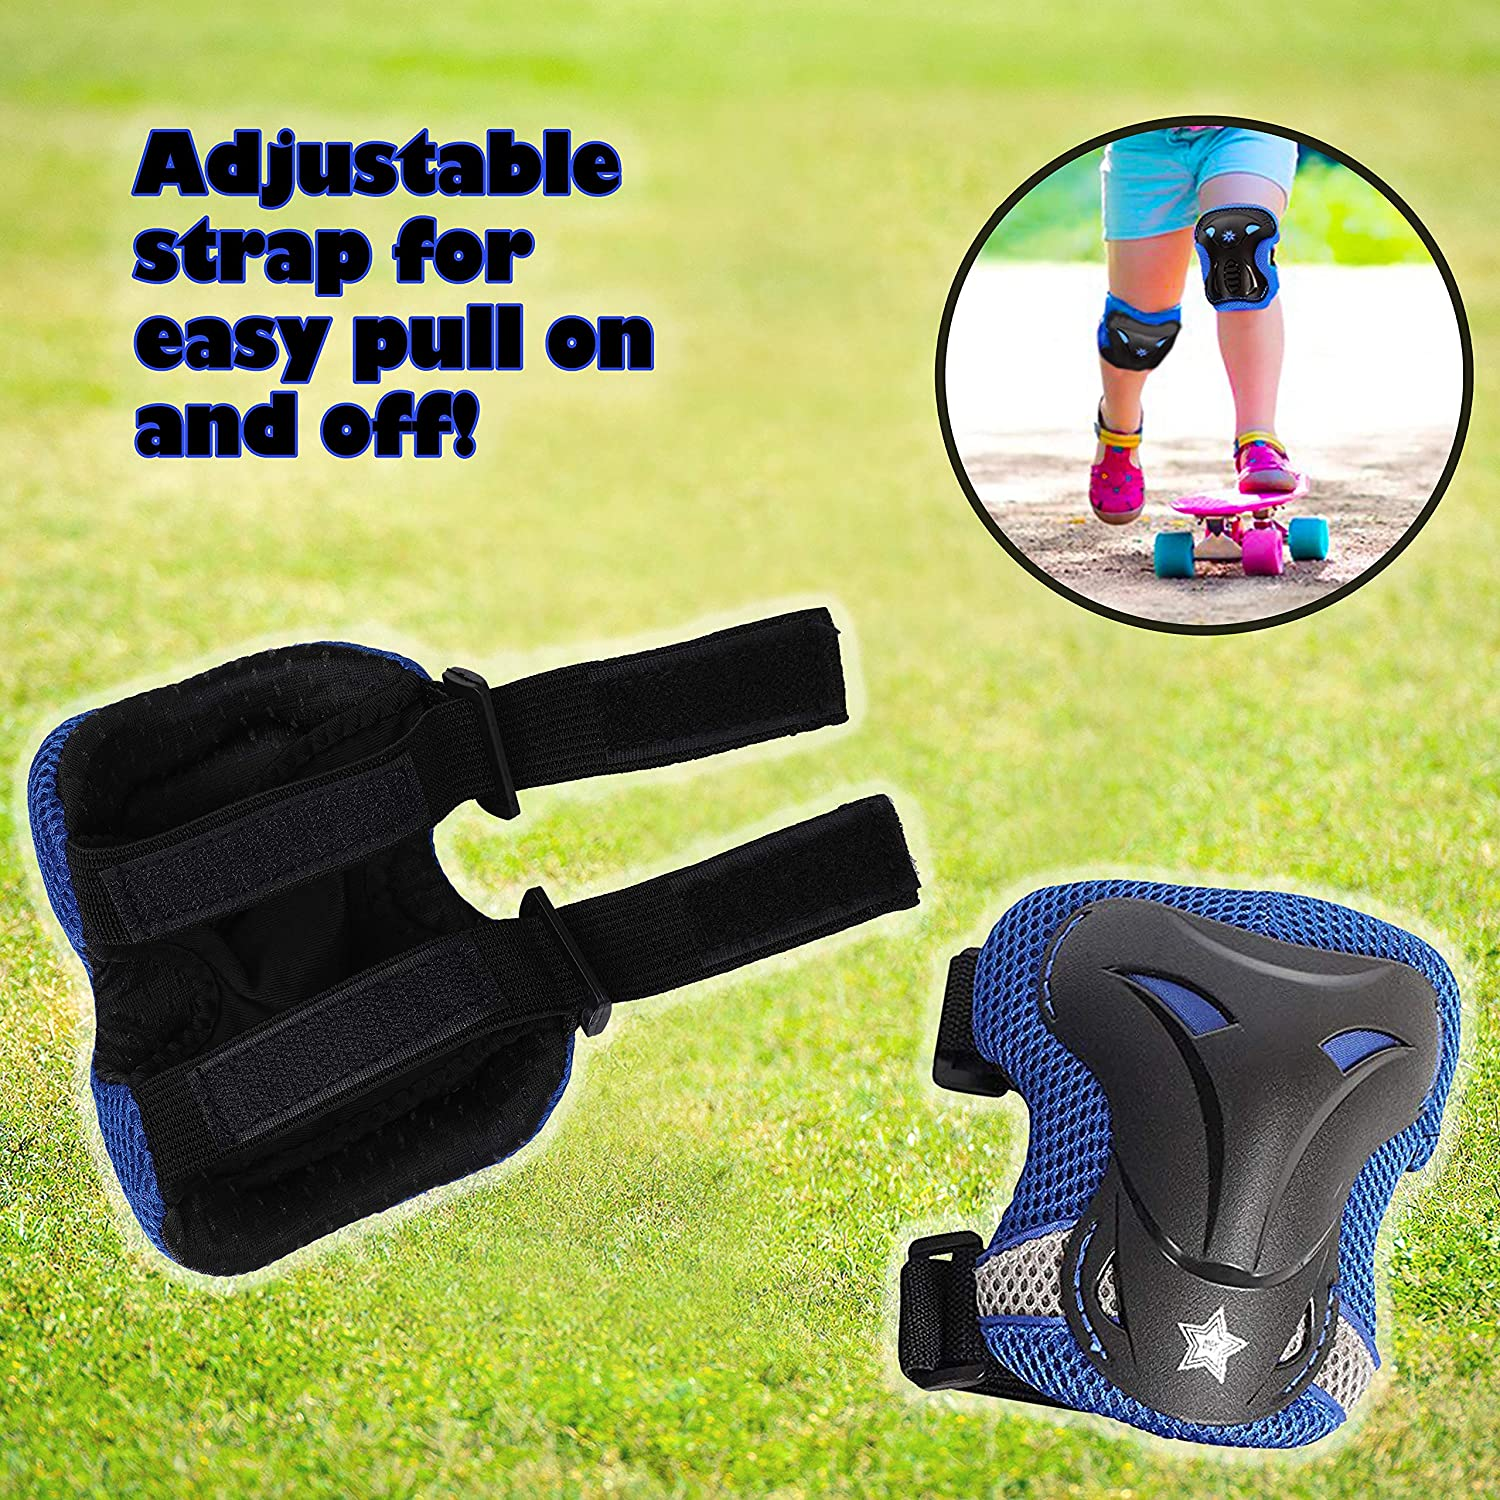 Riding Bicycle Cycling and Multi Sports Safety Protection: Scooter Rollerblades Skateboard High Bounce Knee Pads and Elbow Pads with Wrist Guards Protective Gear Set for Biking